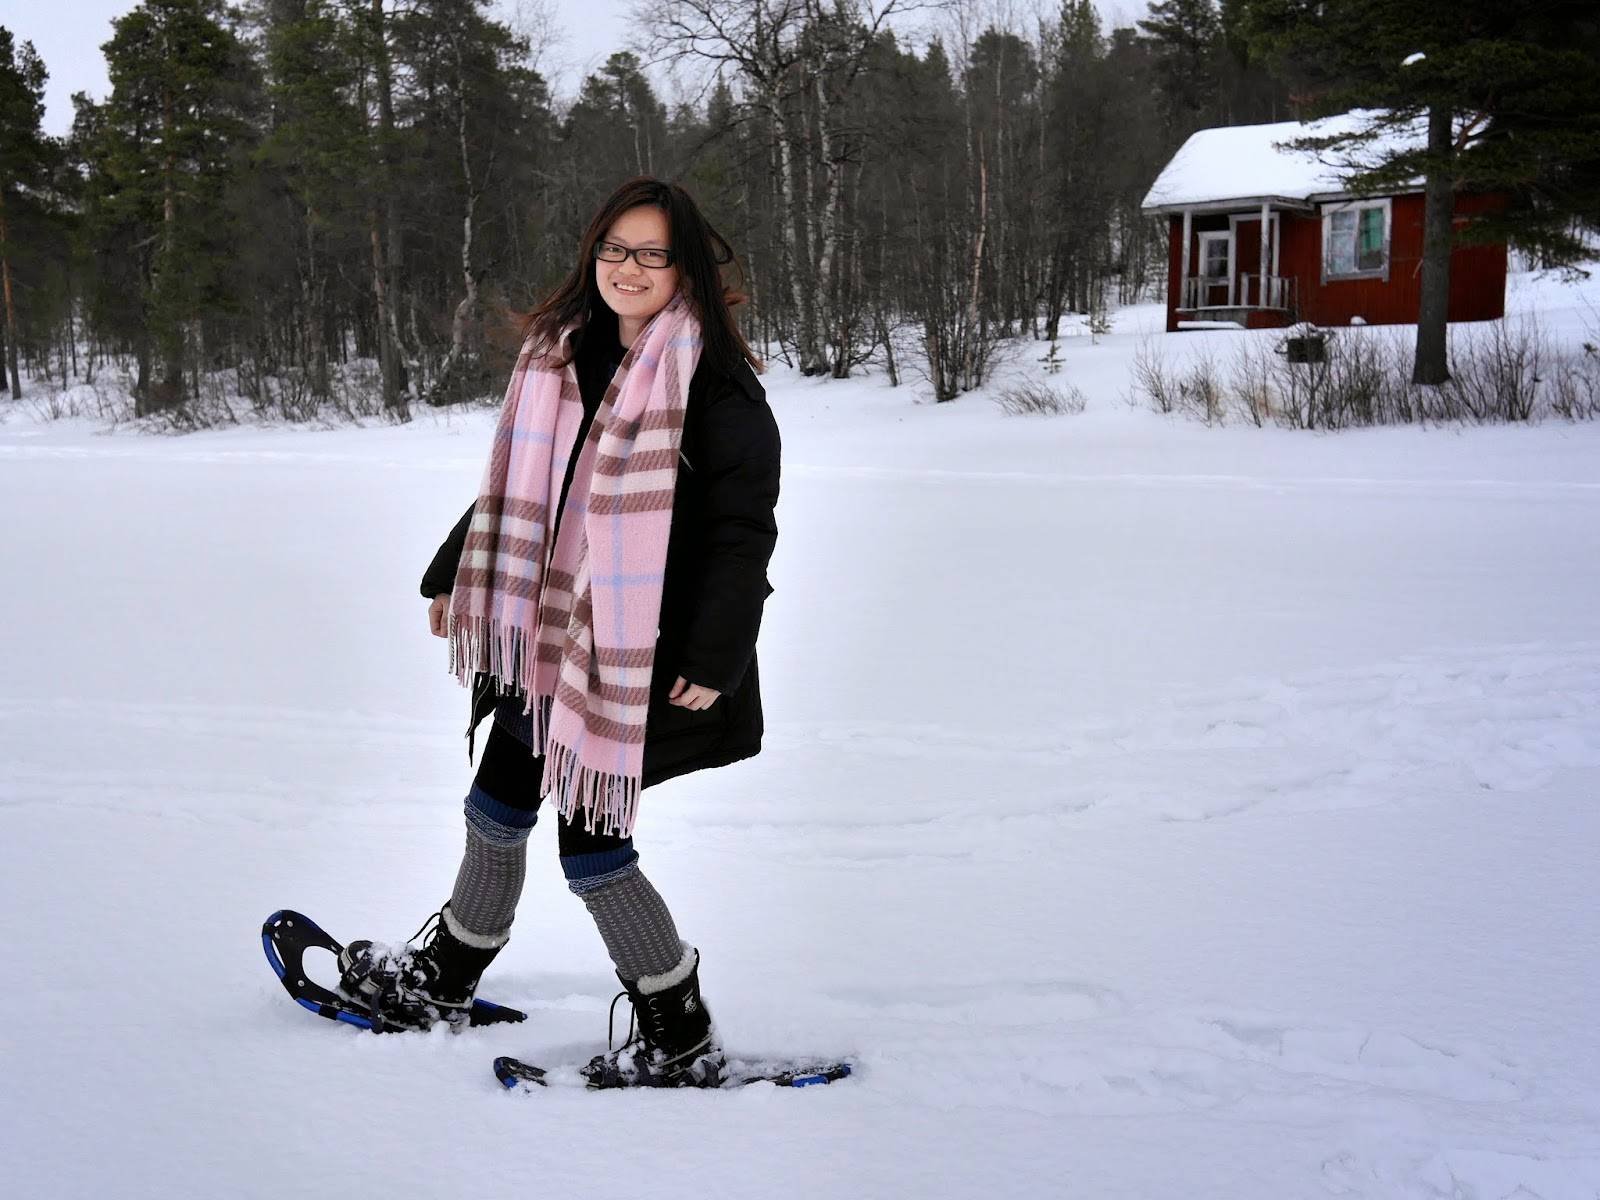 Snowshoeing at Lake Menesjarvi, Finnish Lapland